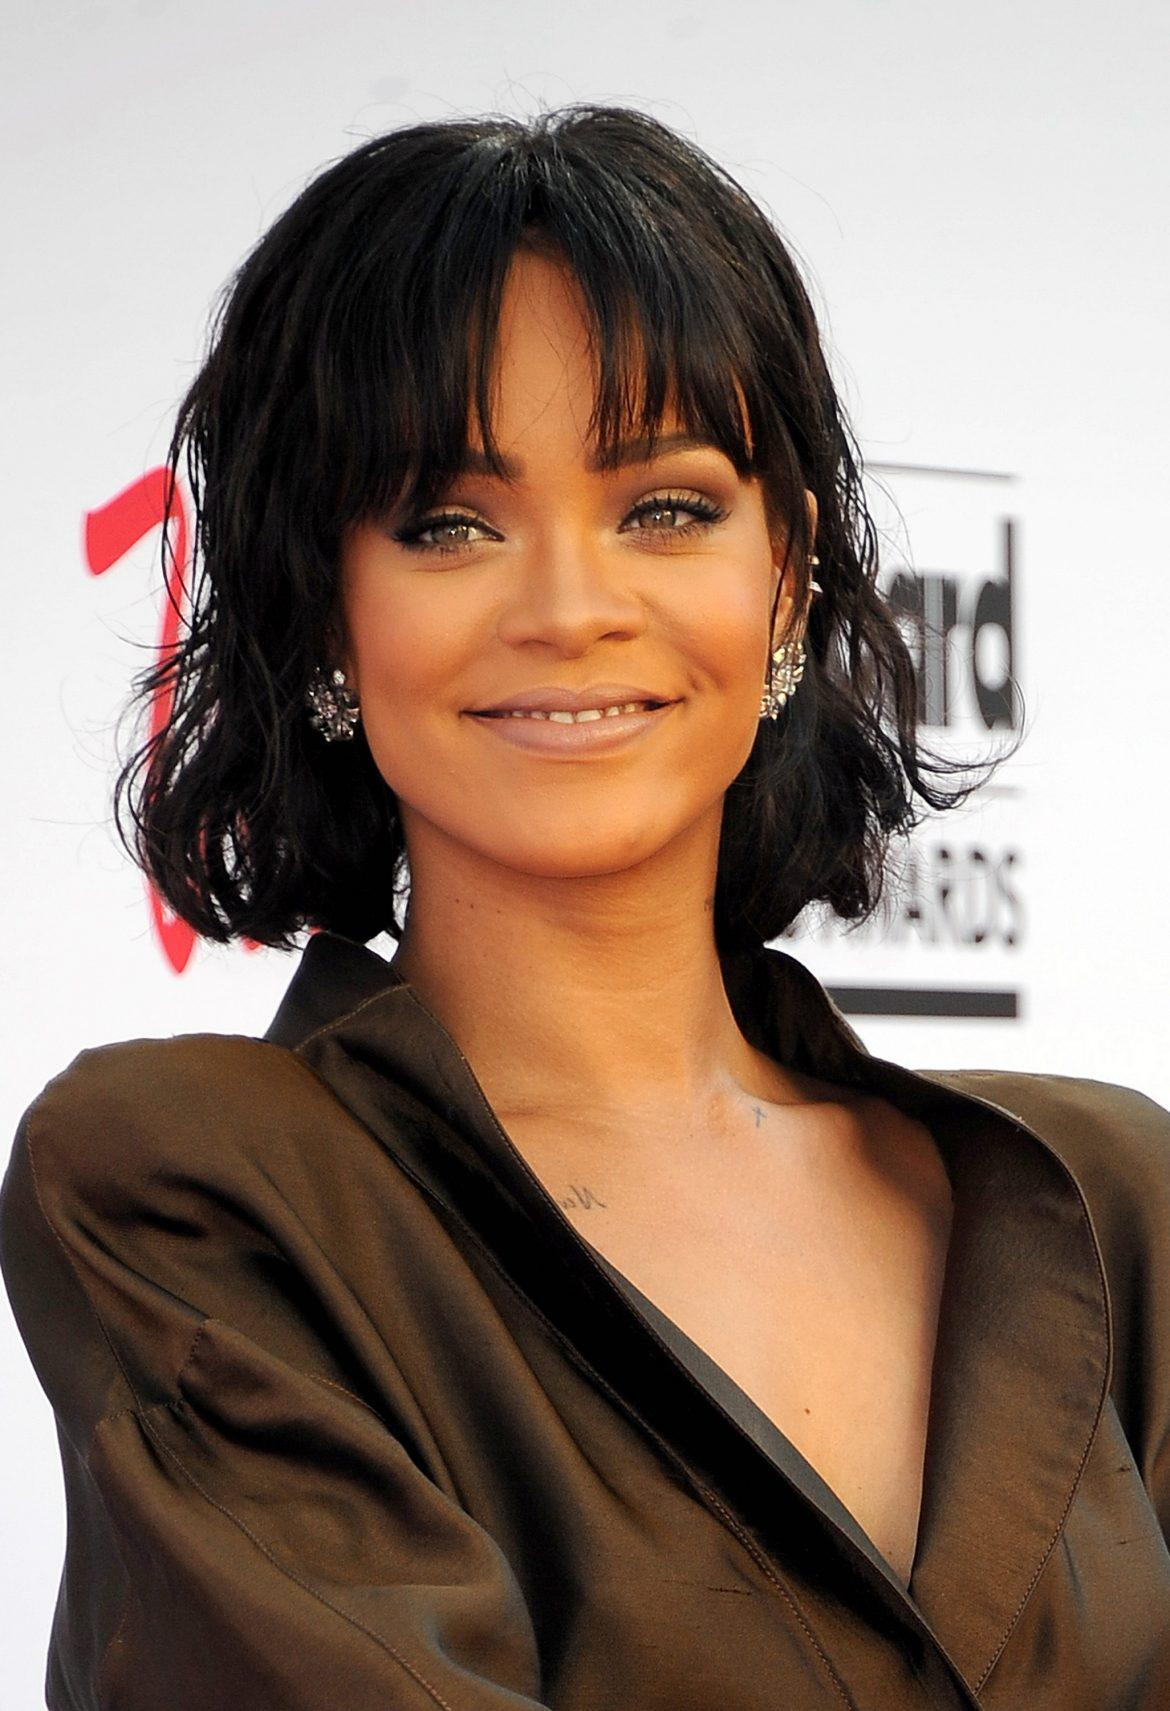 Rihanna+pictured+smiling%2C+shes+wearing+a+dark+green+jacket+and+has+short+black+hair+with+bangs